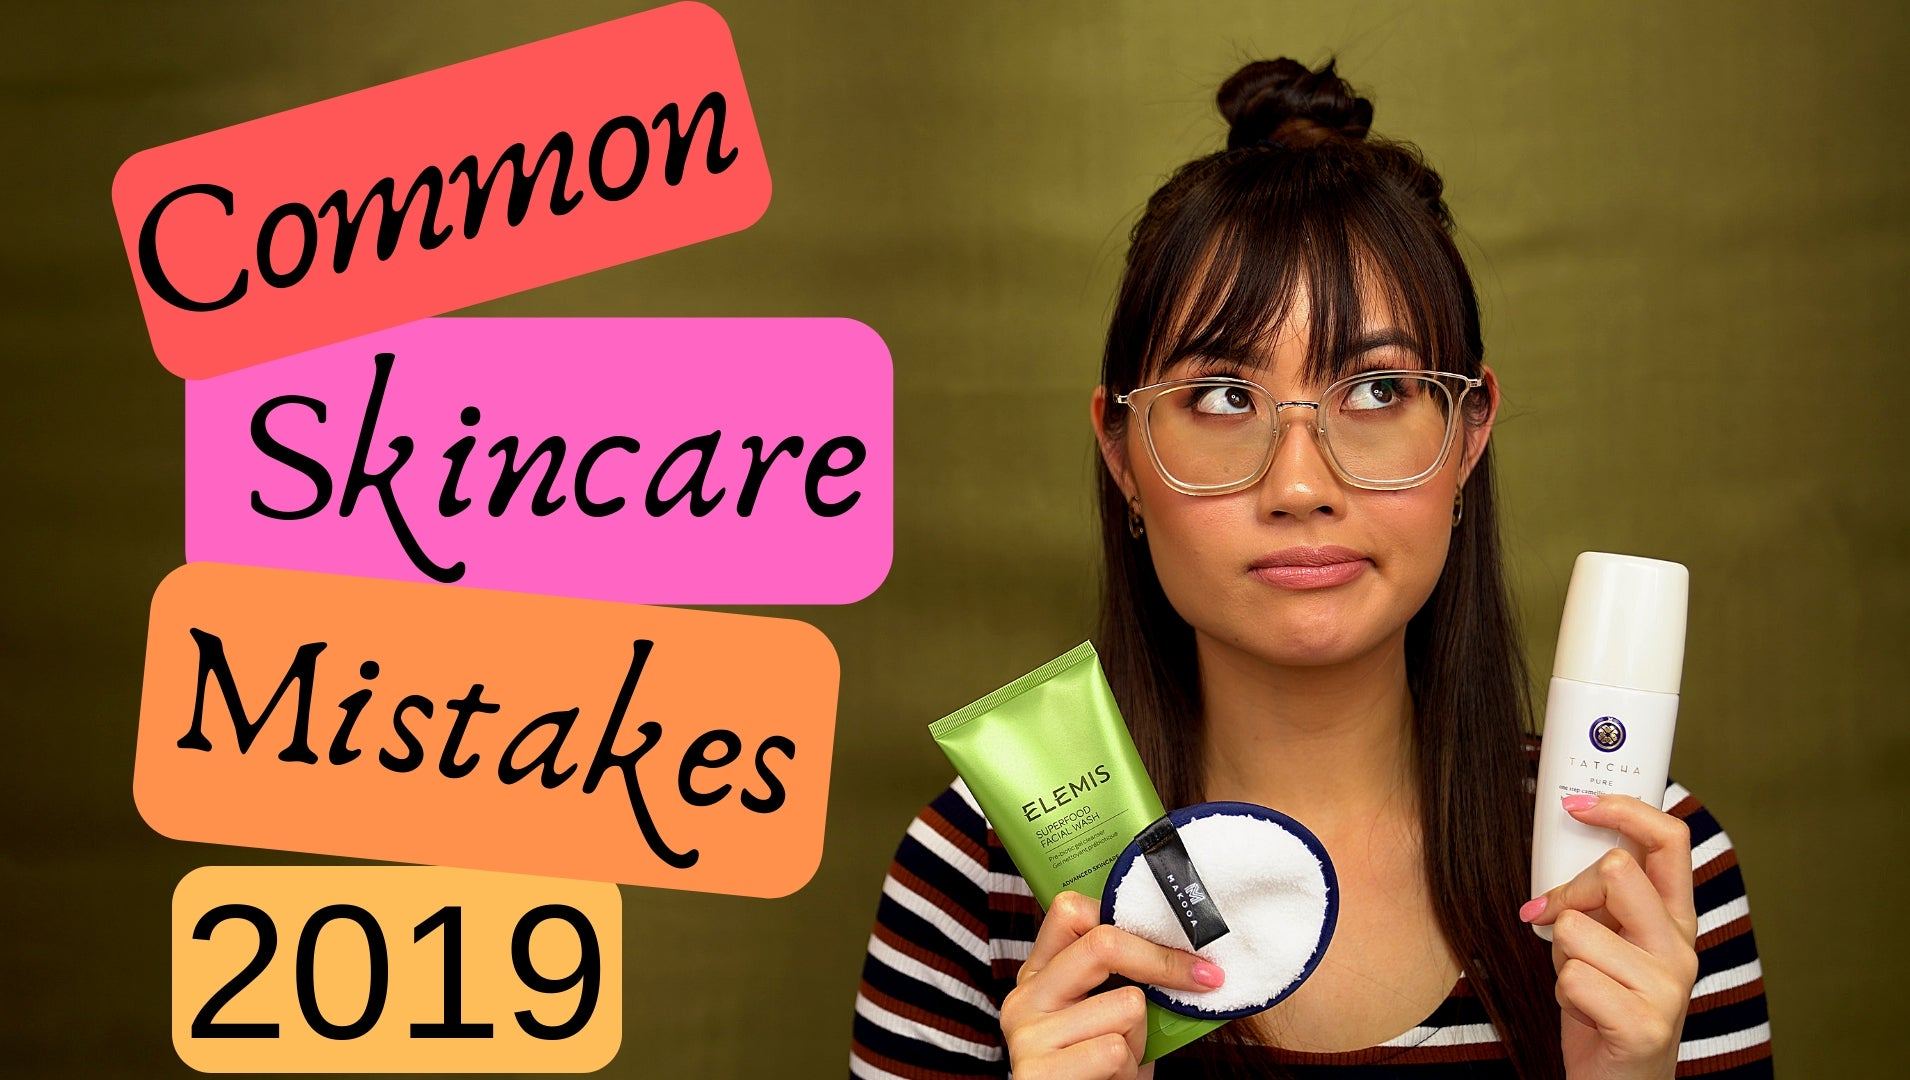 Common Skincare Mistakes 2019 | Are You Doing These?